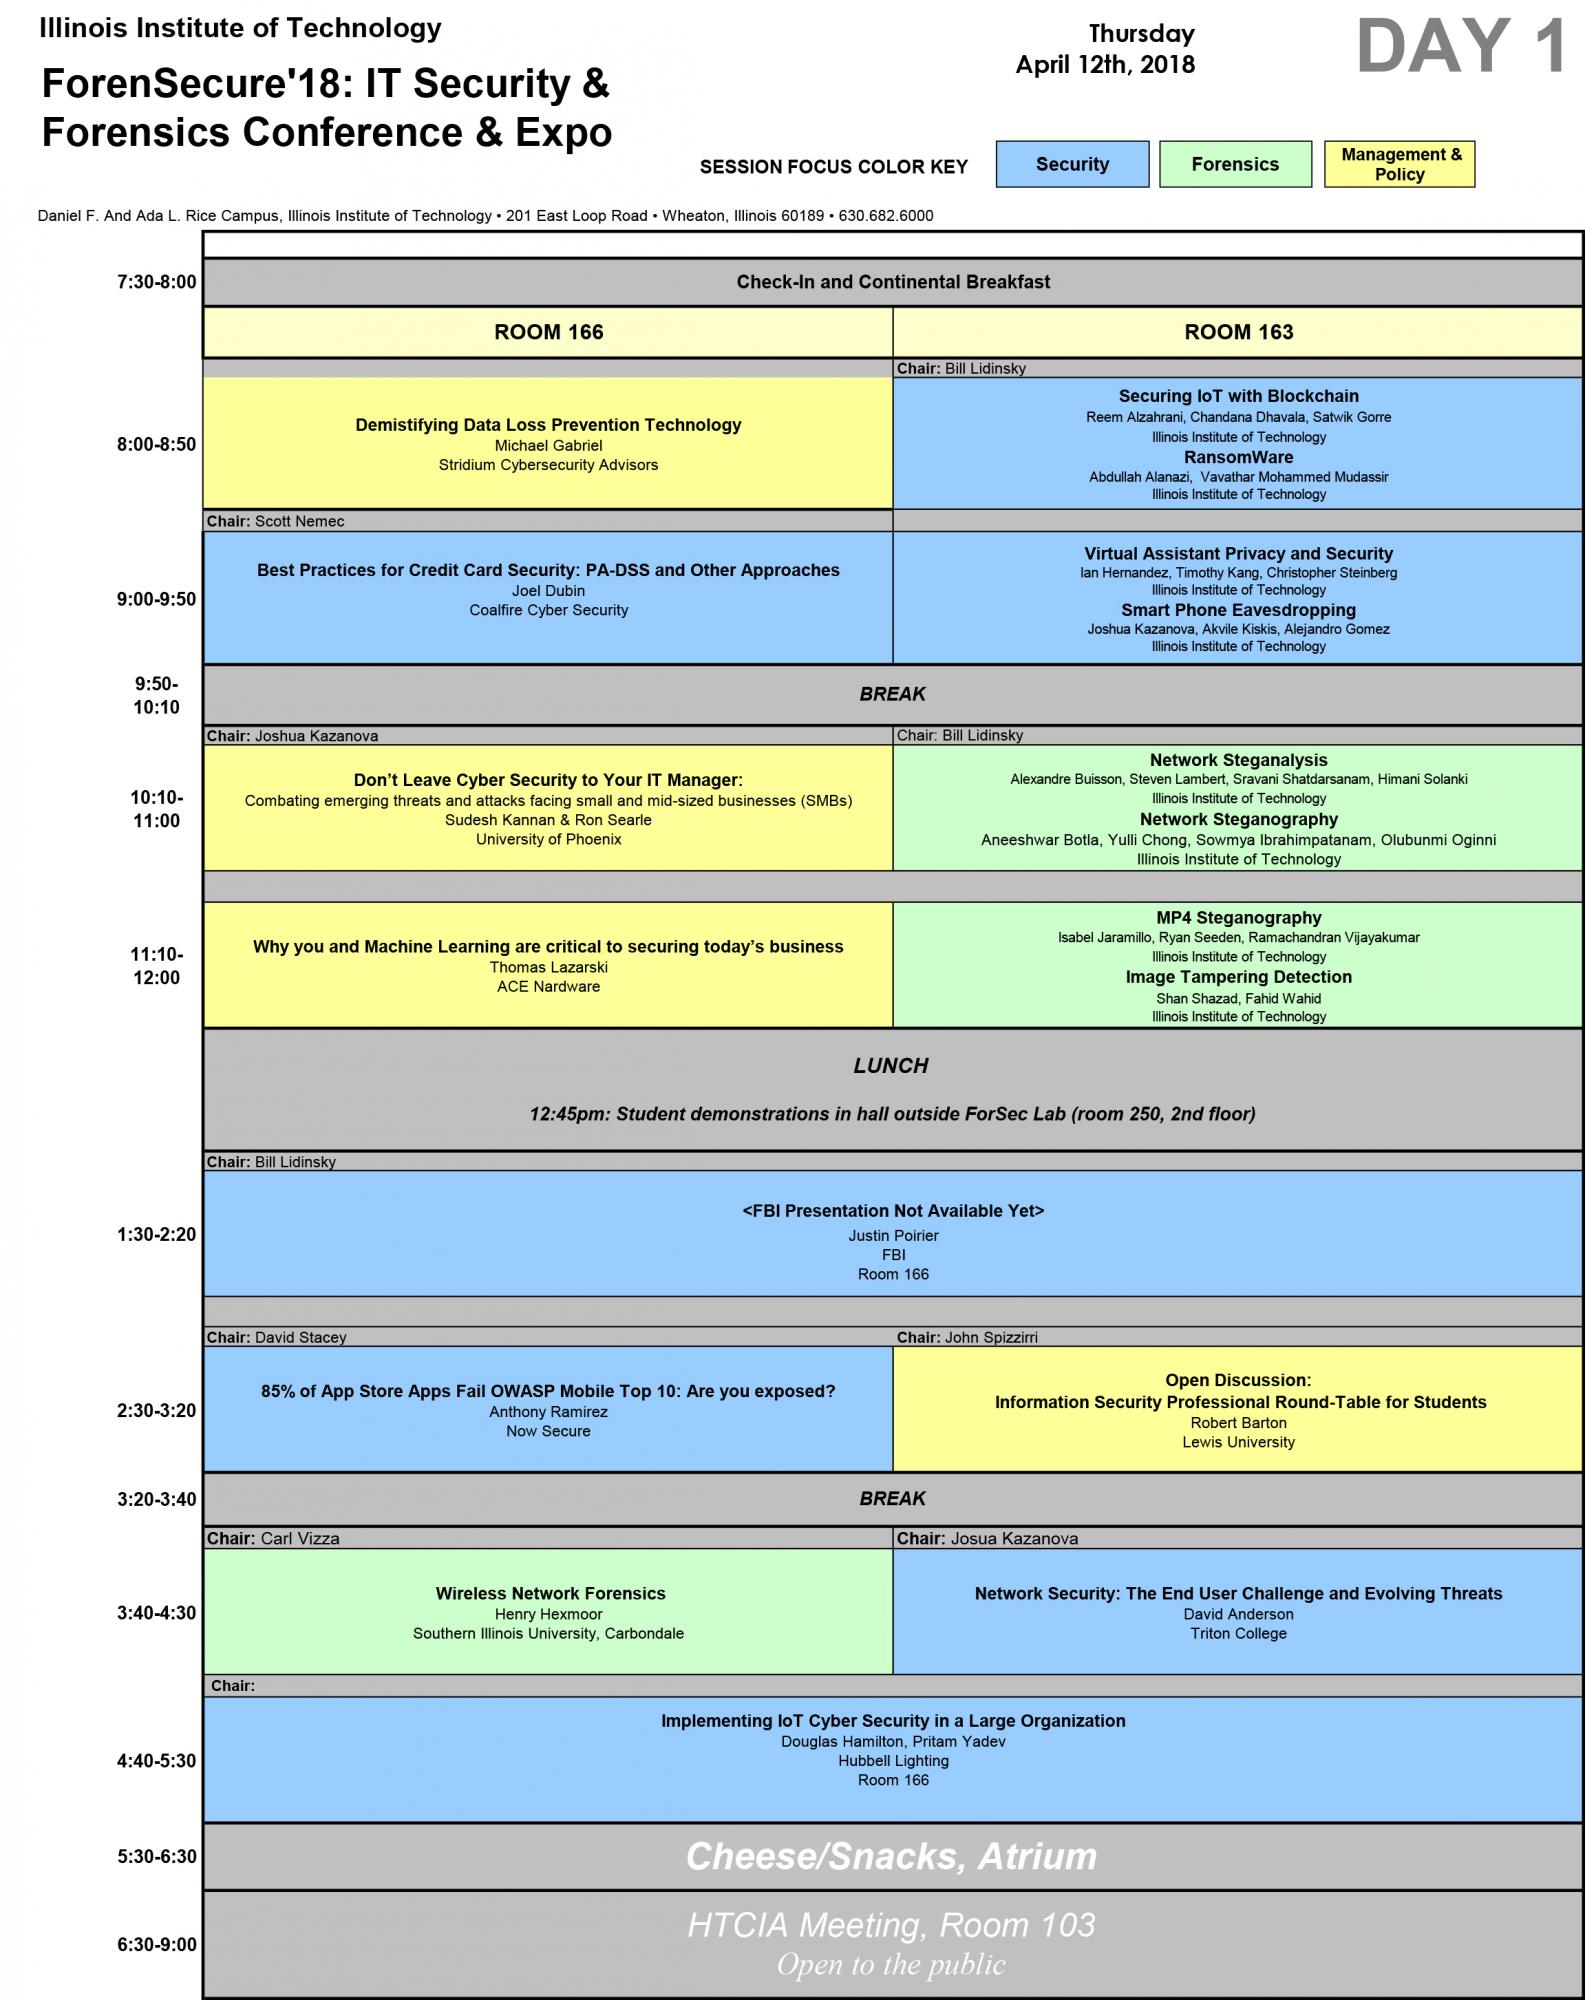 ForenSecure Schedule for Day 1